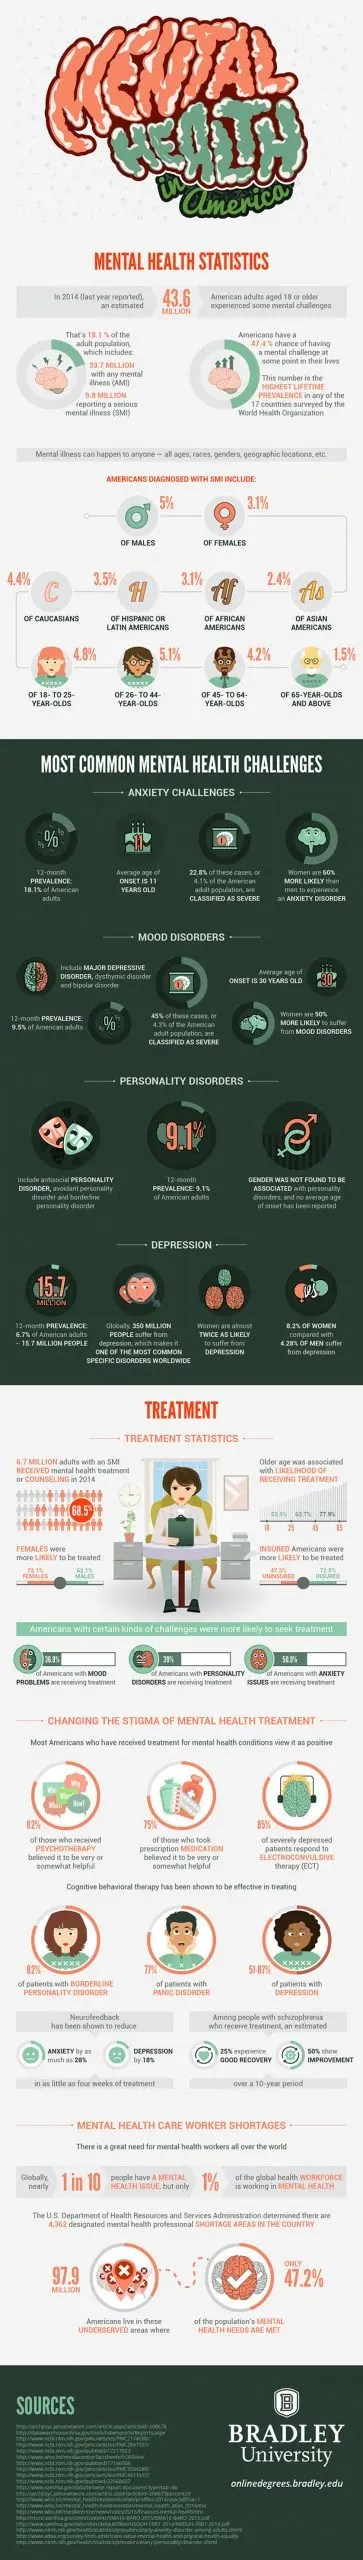 Mental Health in America, Infographic